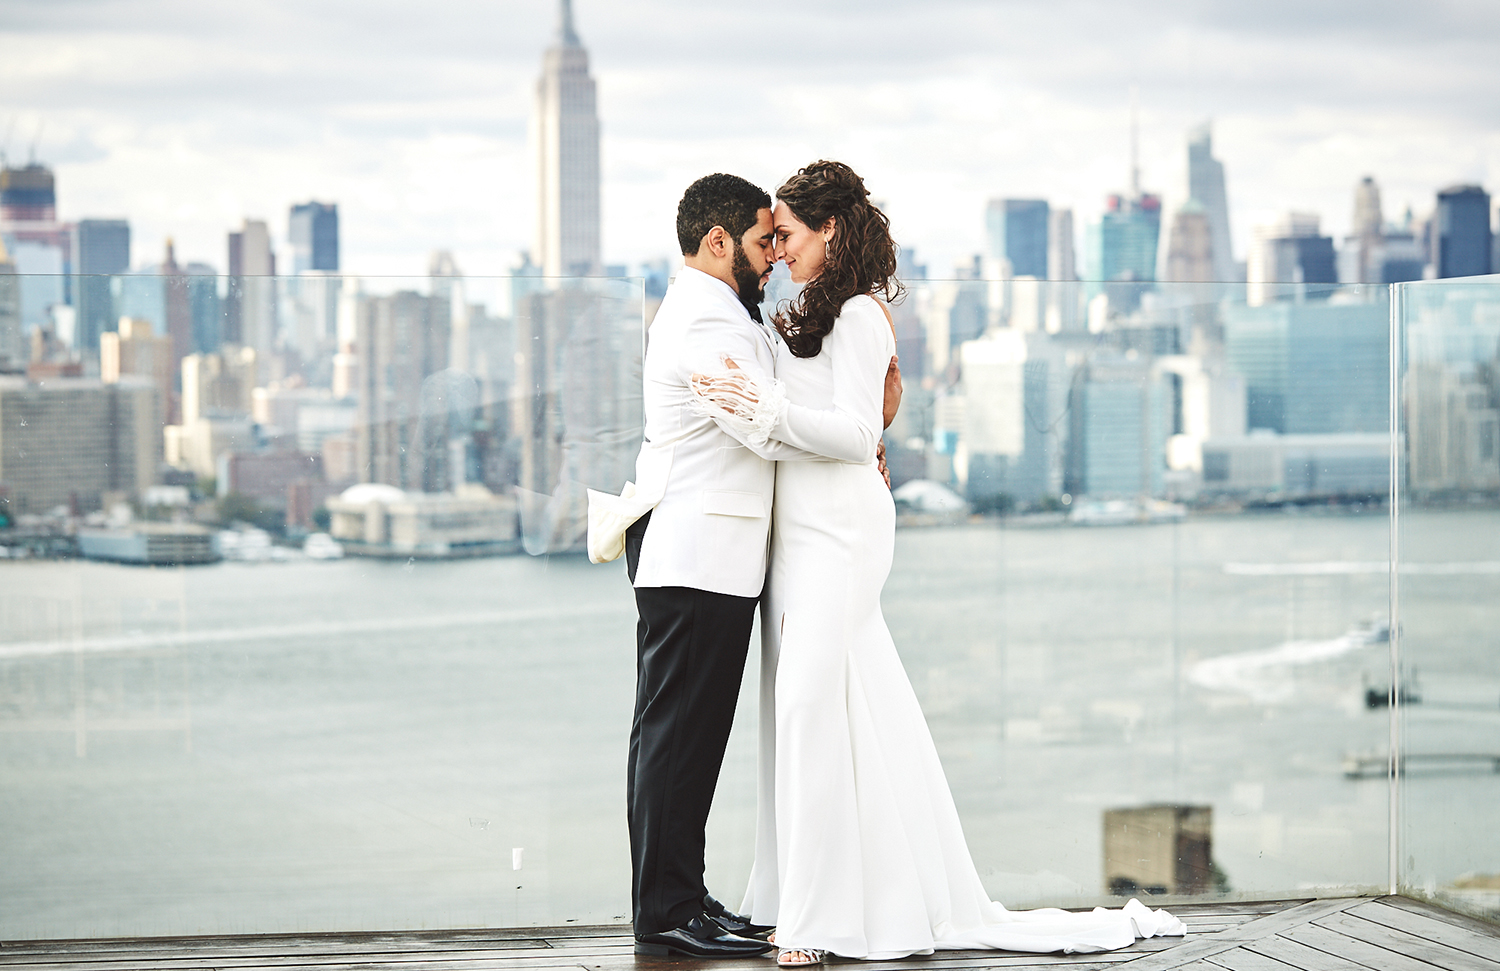 170930_WilliamValeWeddingPhotography_BrooklynWeddingPhotographer_By_BriJohnsonWeddings_0084.jpg